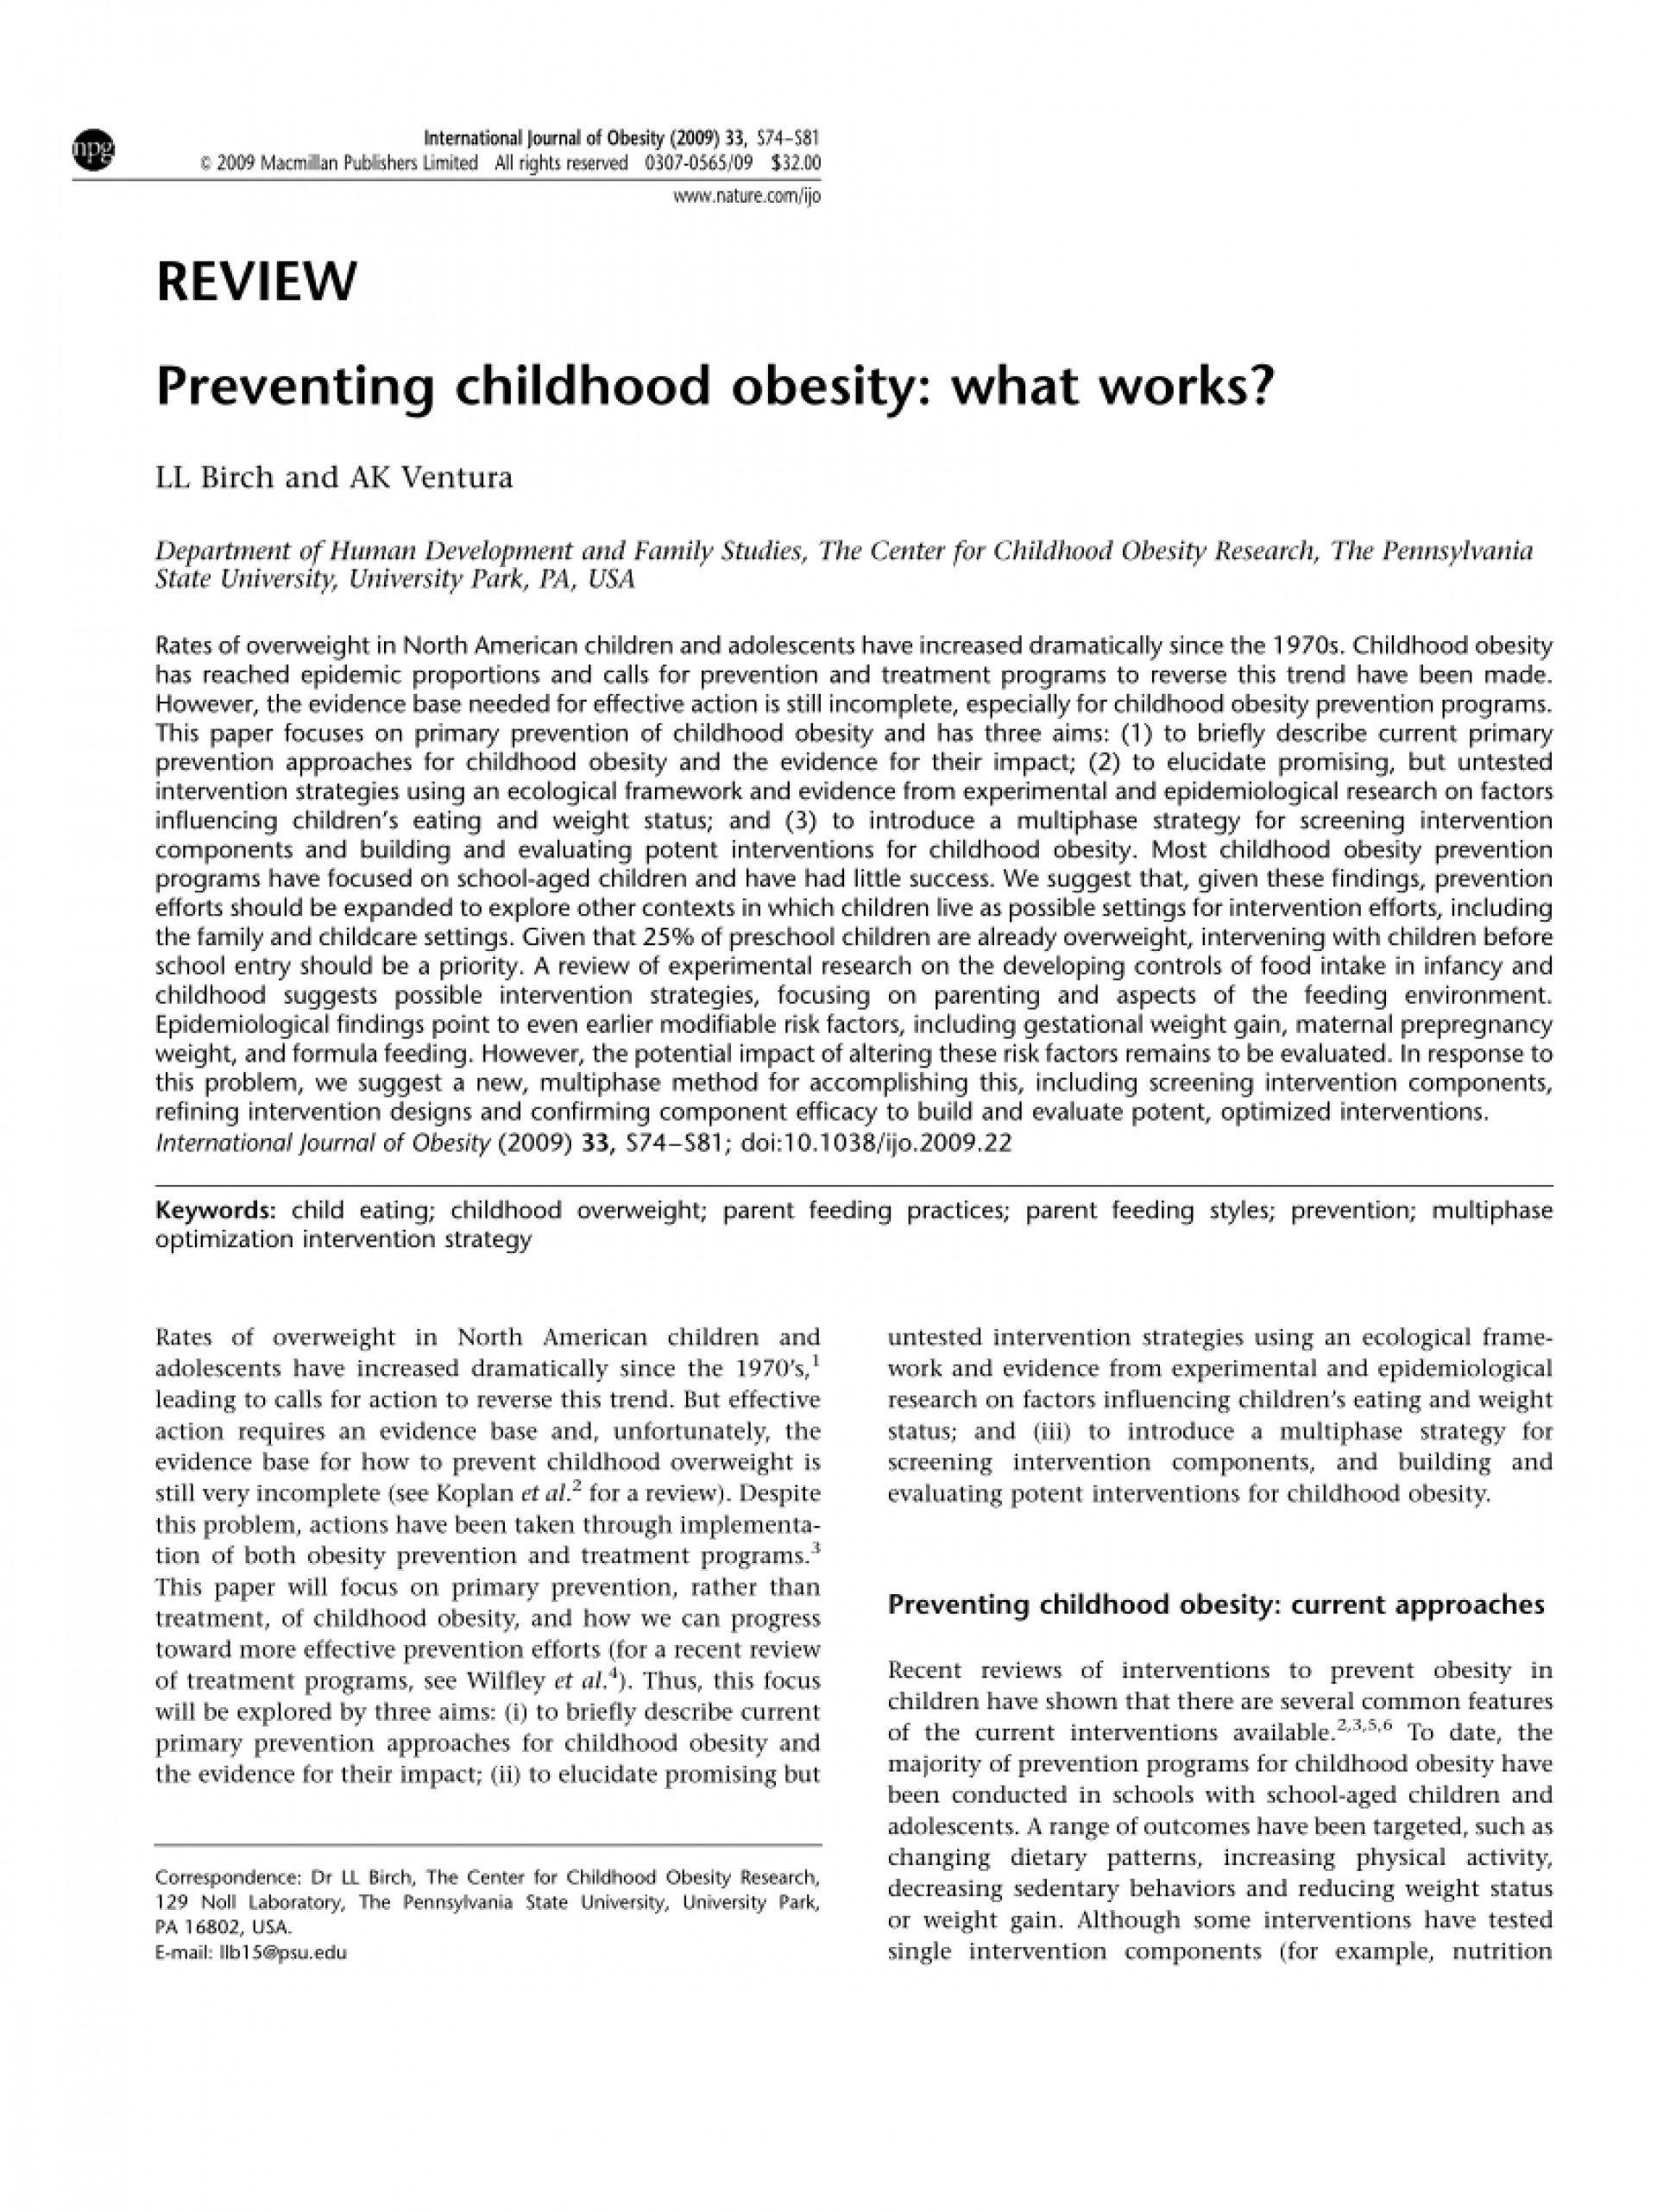 sample research paper about obesity